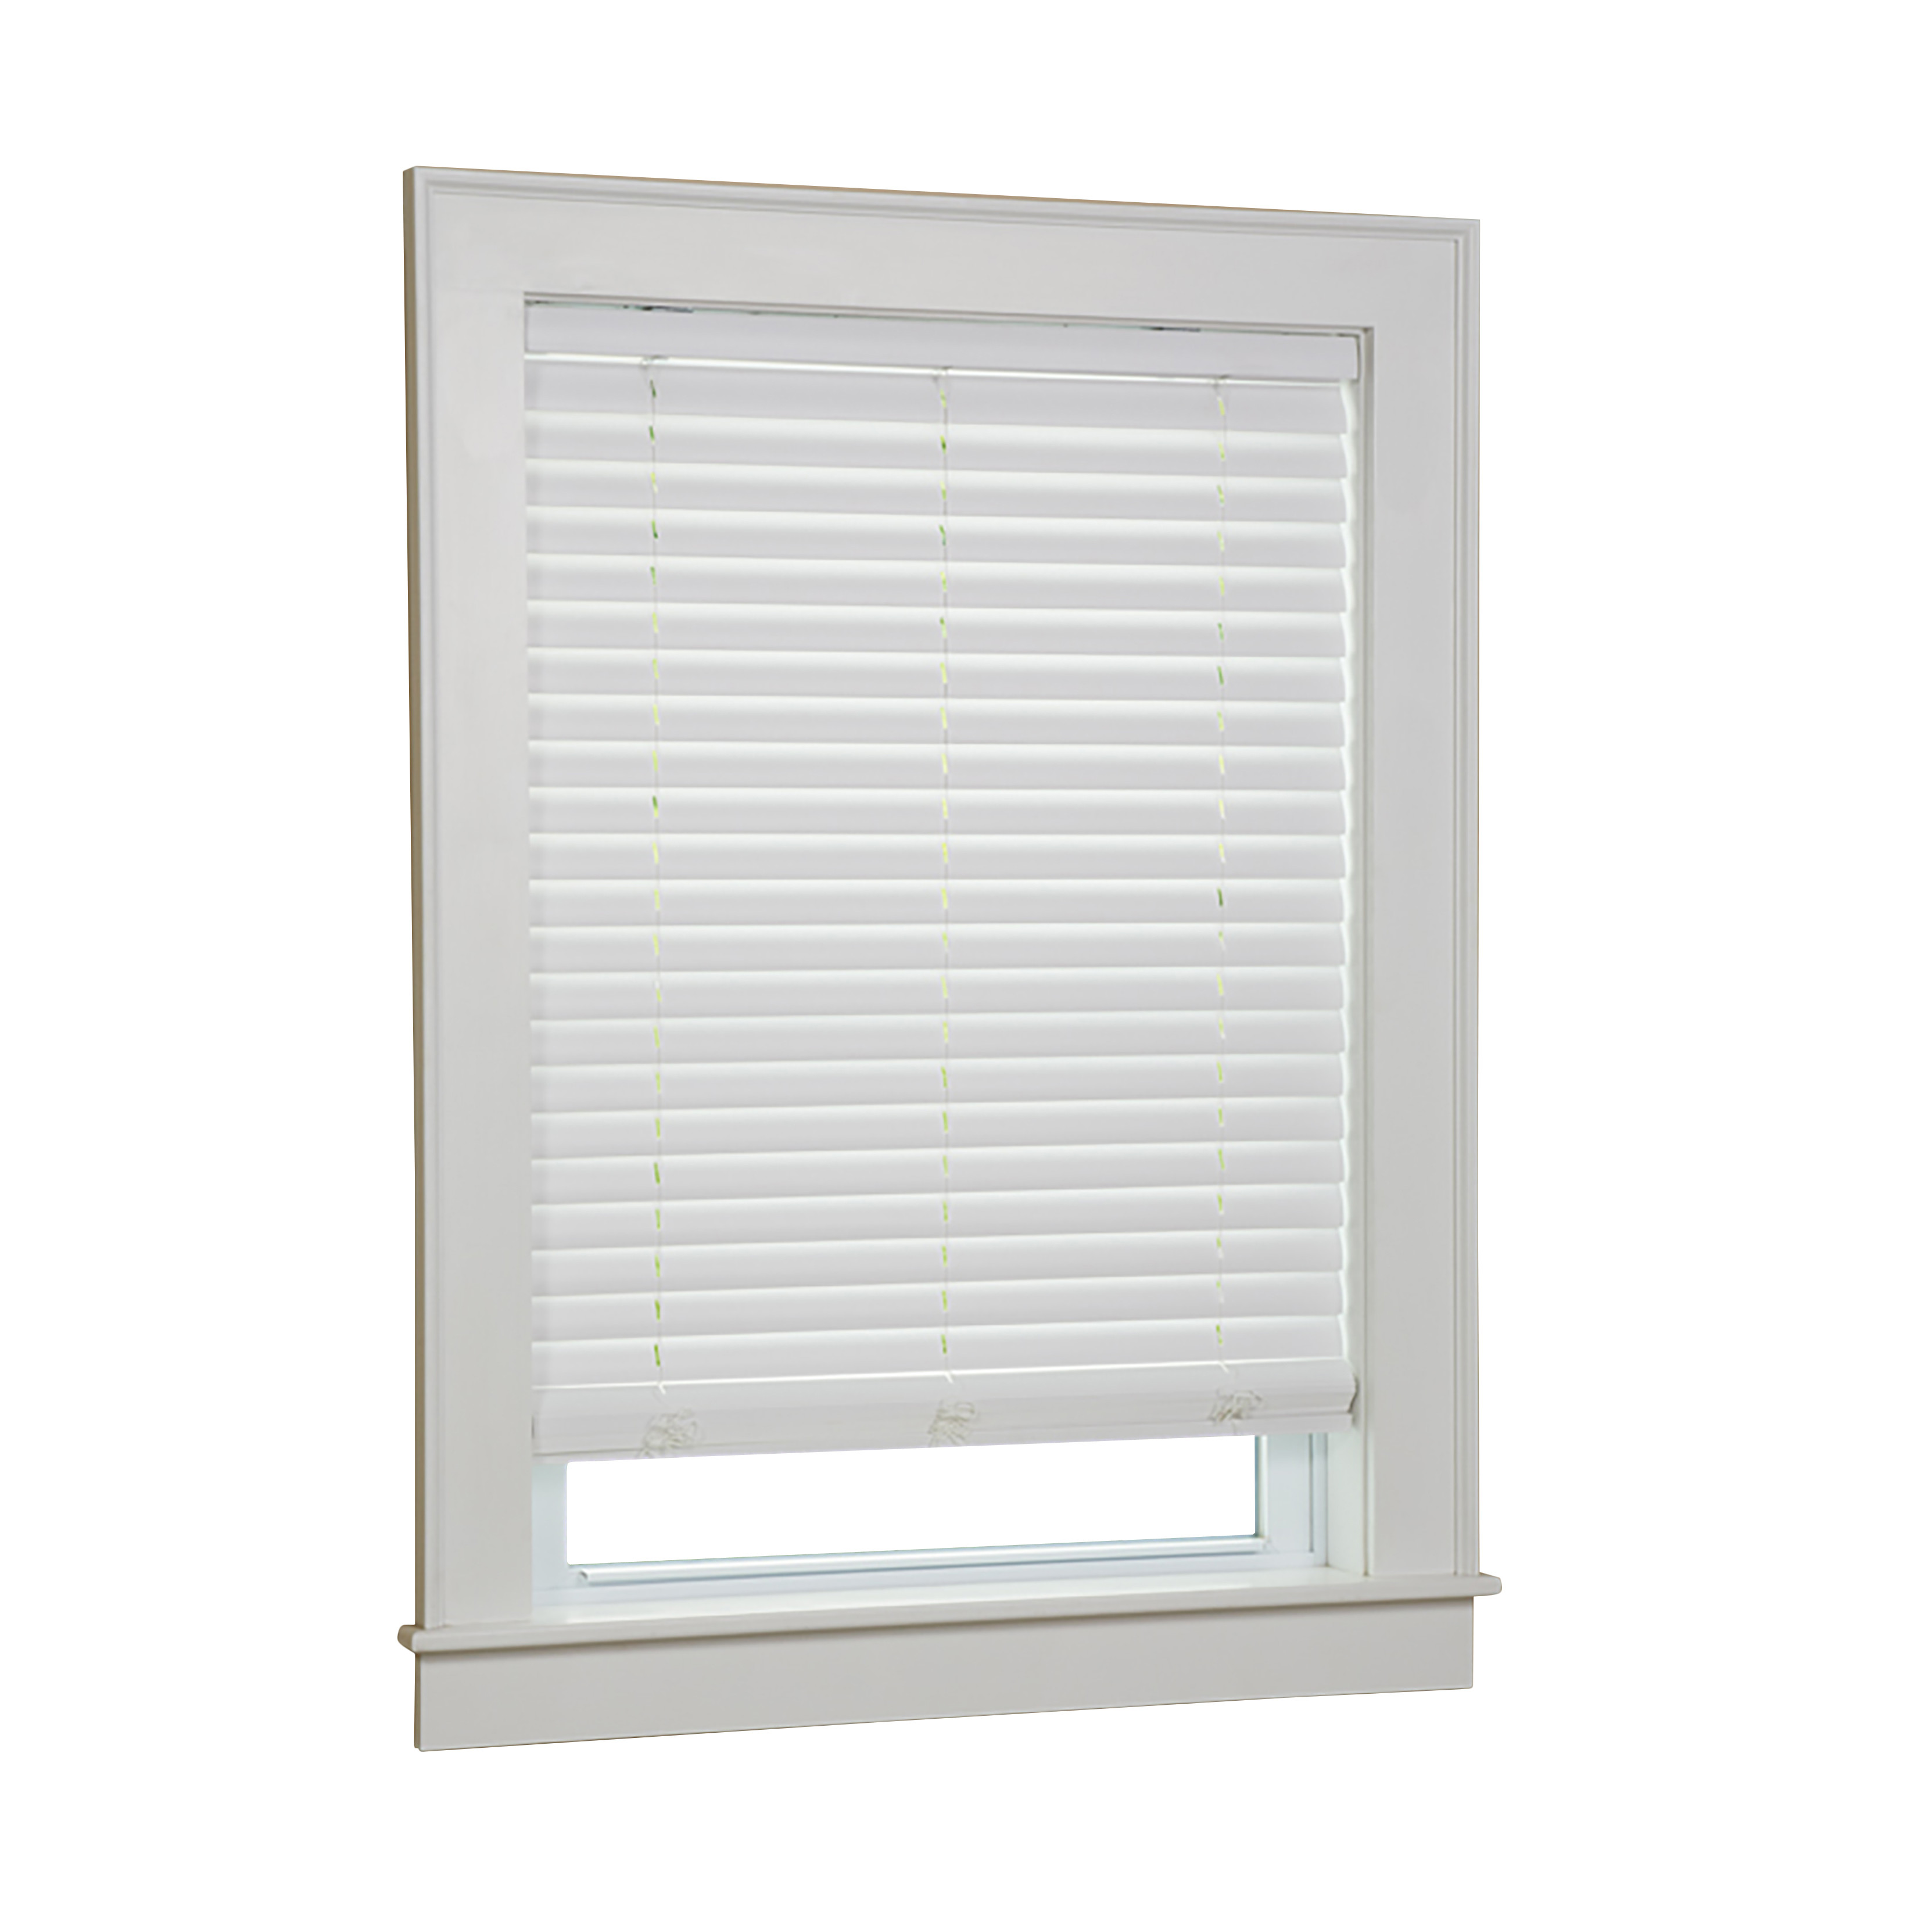 Bali Blinds | Bali Cellular Shades | Menards Window Blinds